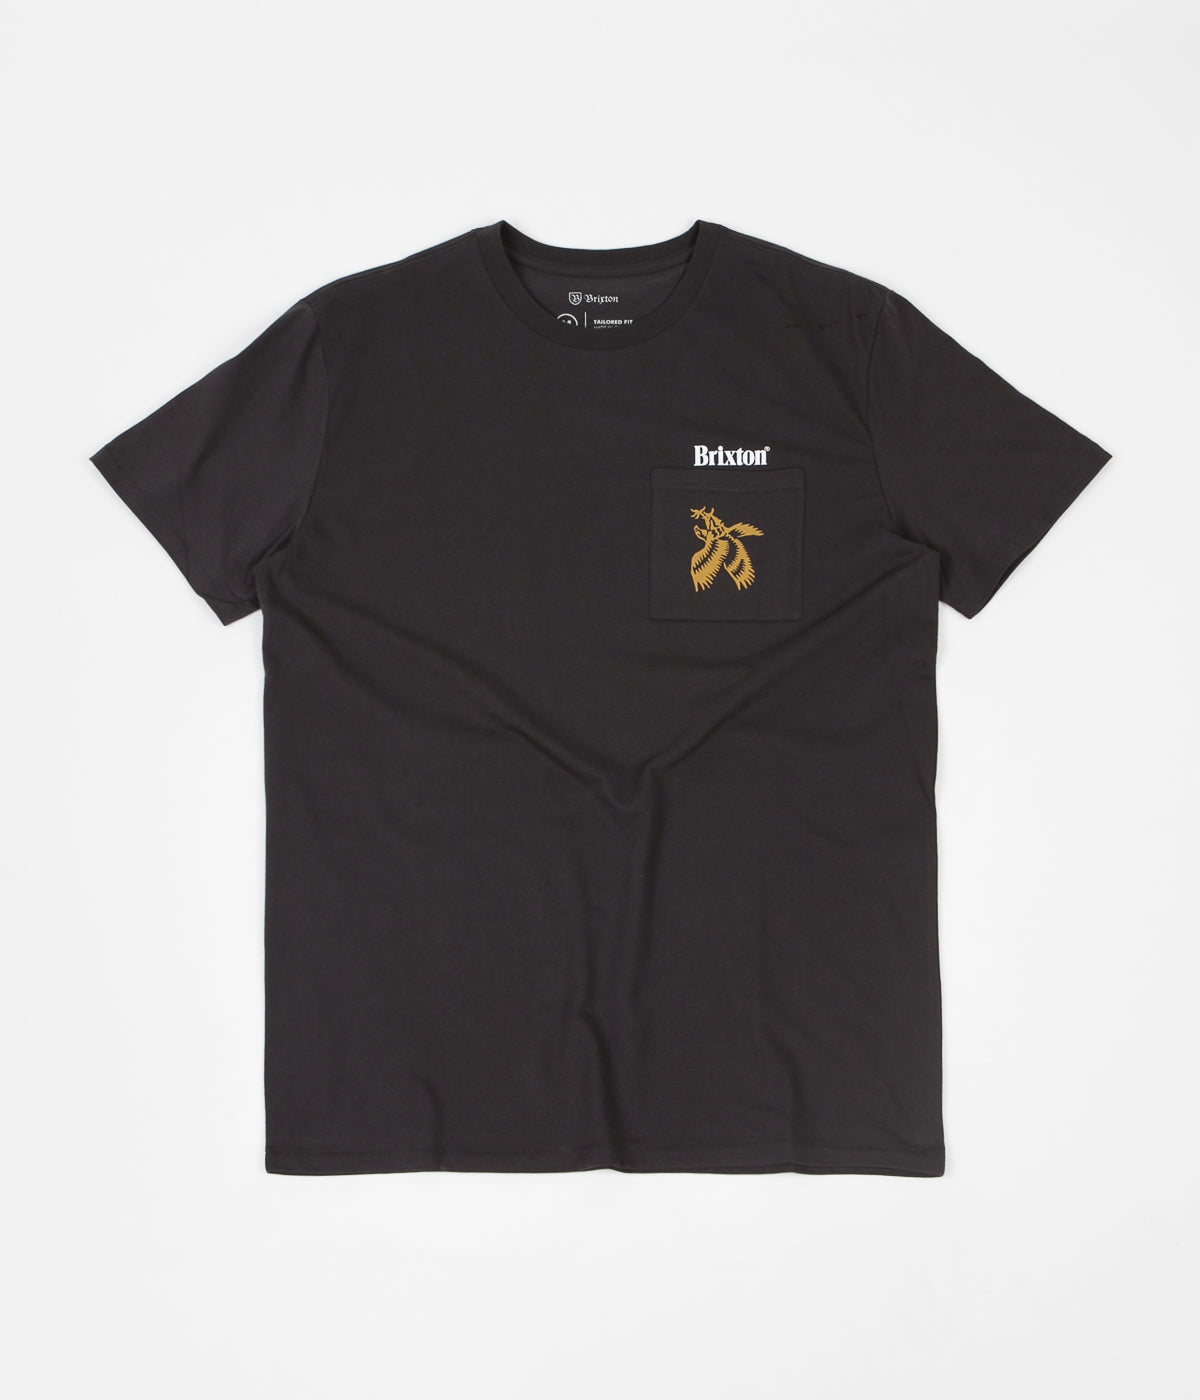 Brixton Descent II Pocket T-Shirt - Washed Black